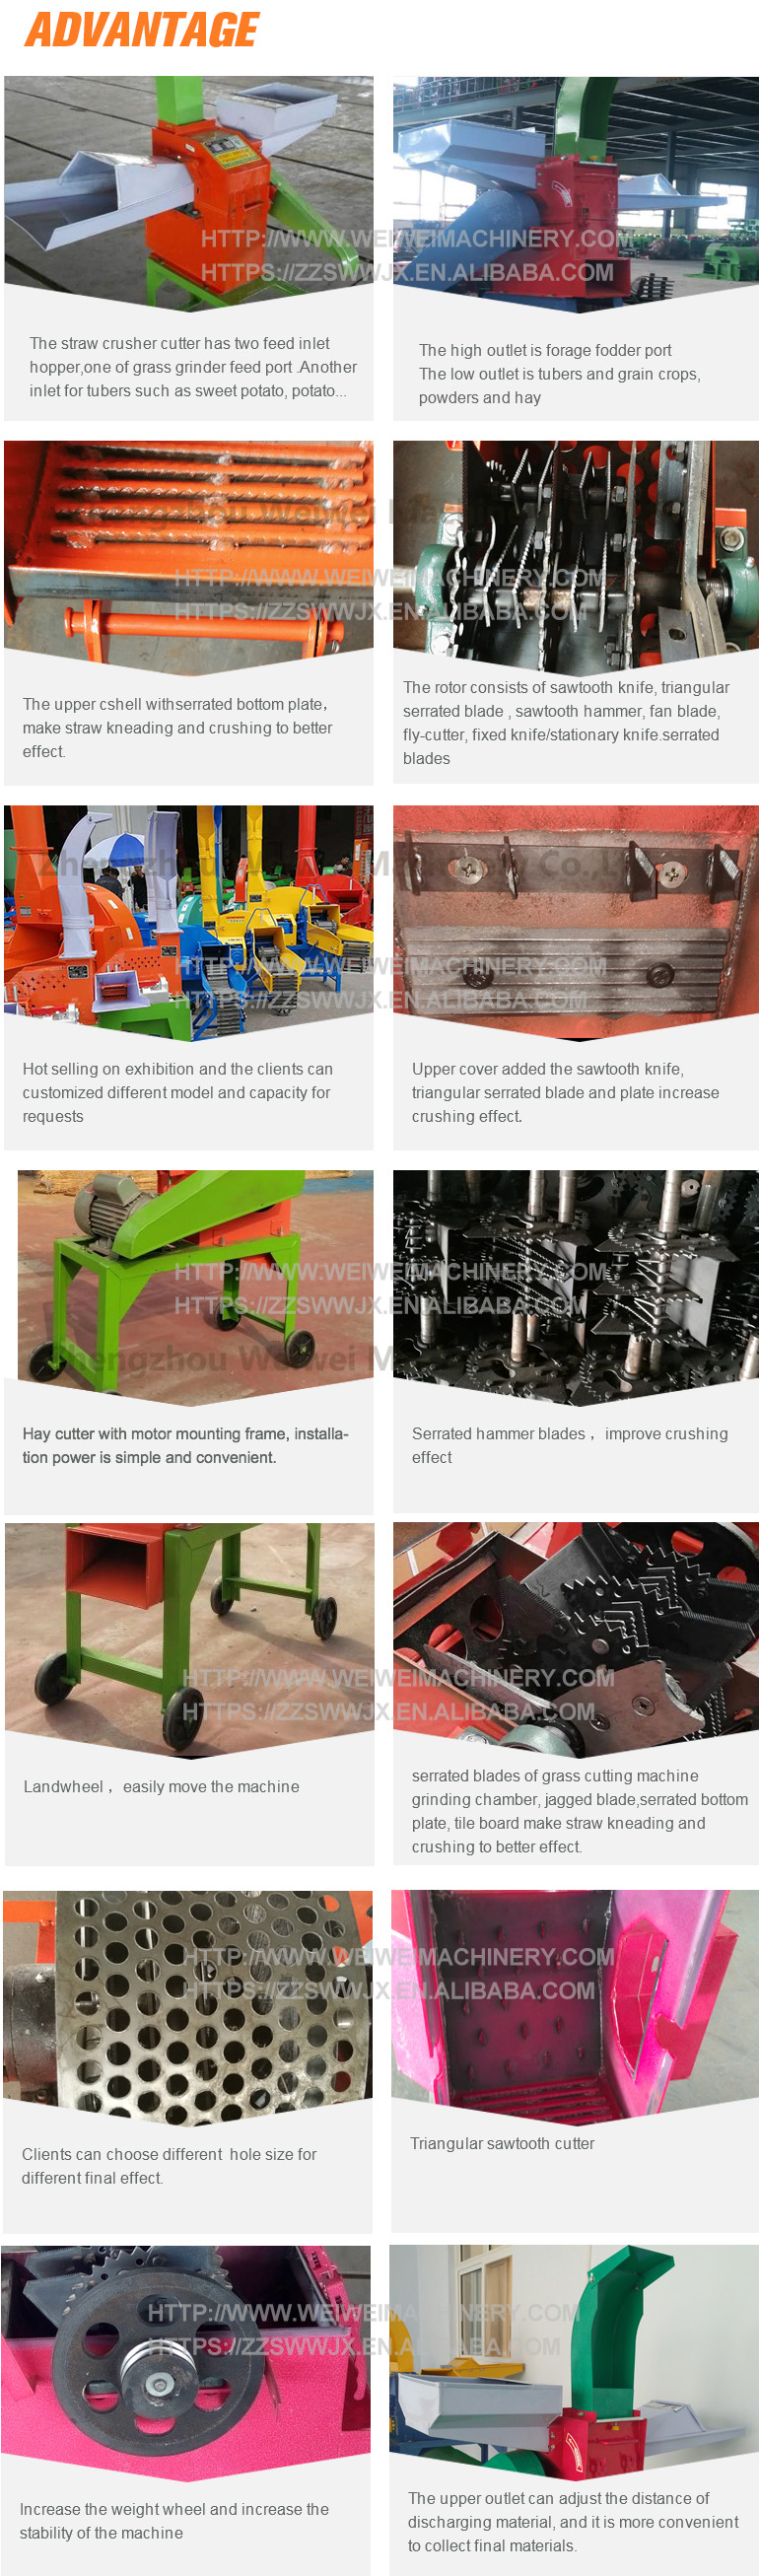 New hot selling products hotsell feed crusher flour mill chaff cutter grass straw cutting and grinding weiwei brand machine